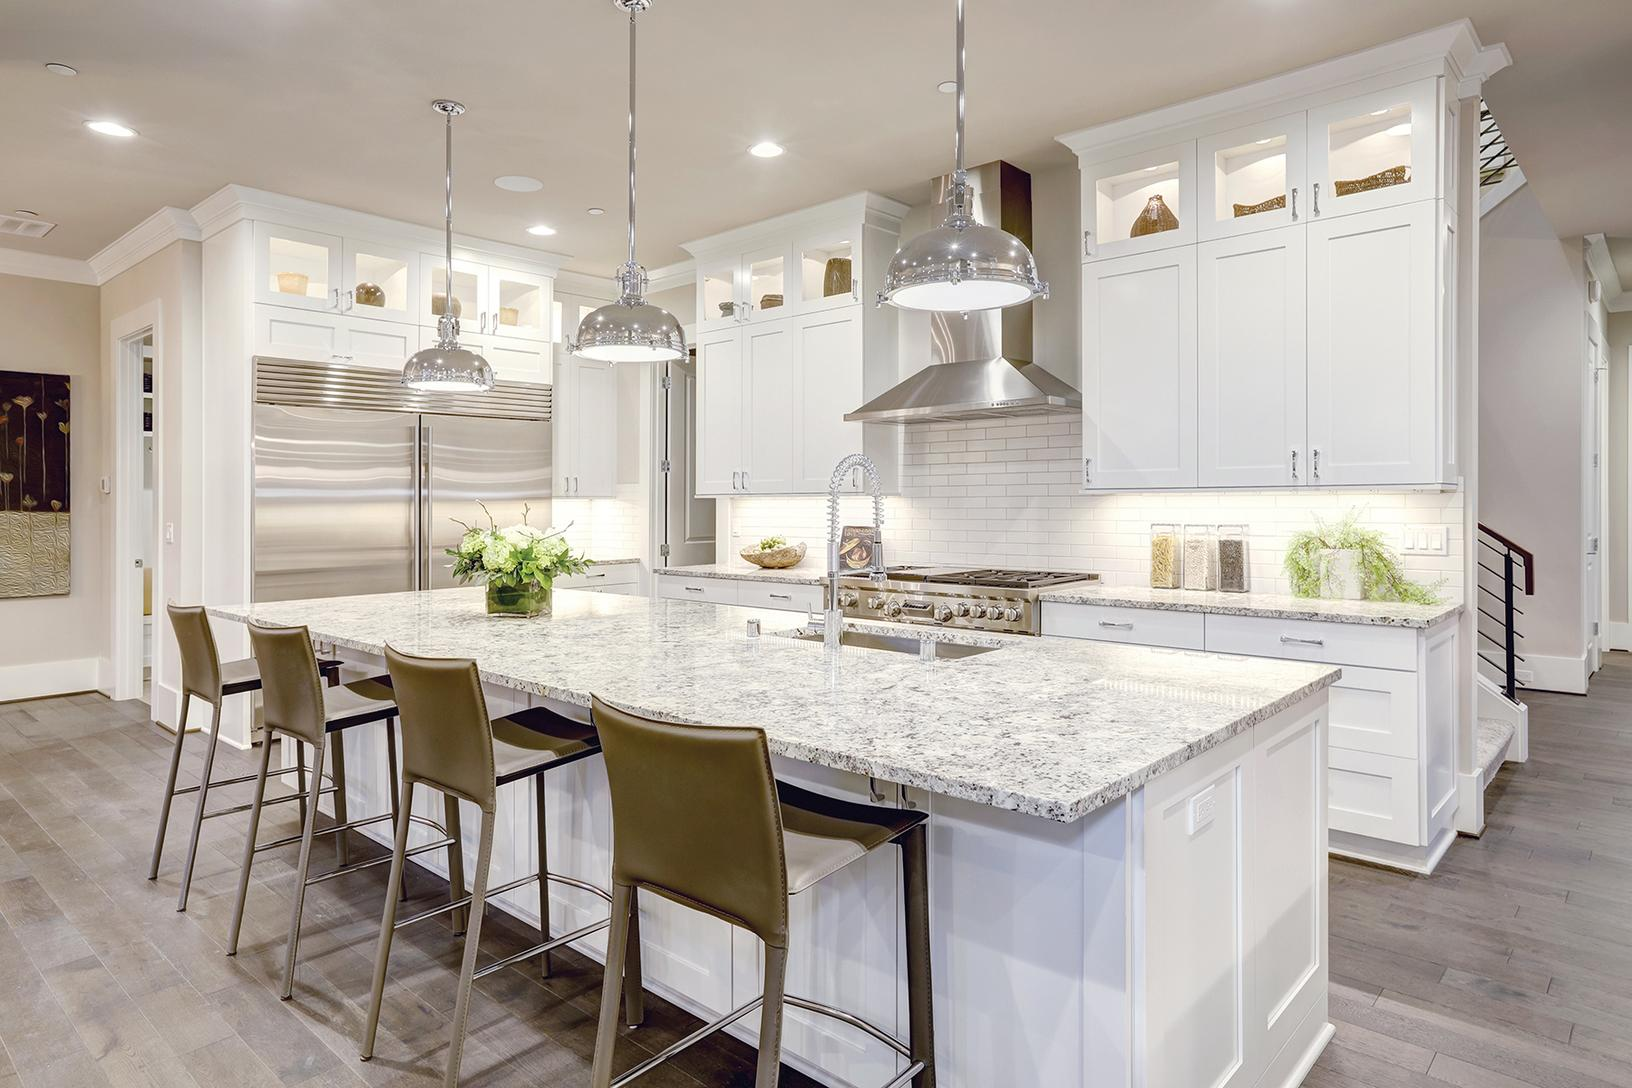 Arrow Renovation Includes New Innovative Kitchen Refacing as More Affordable Option During Pandemic - Image 1